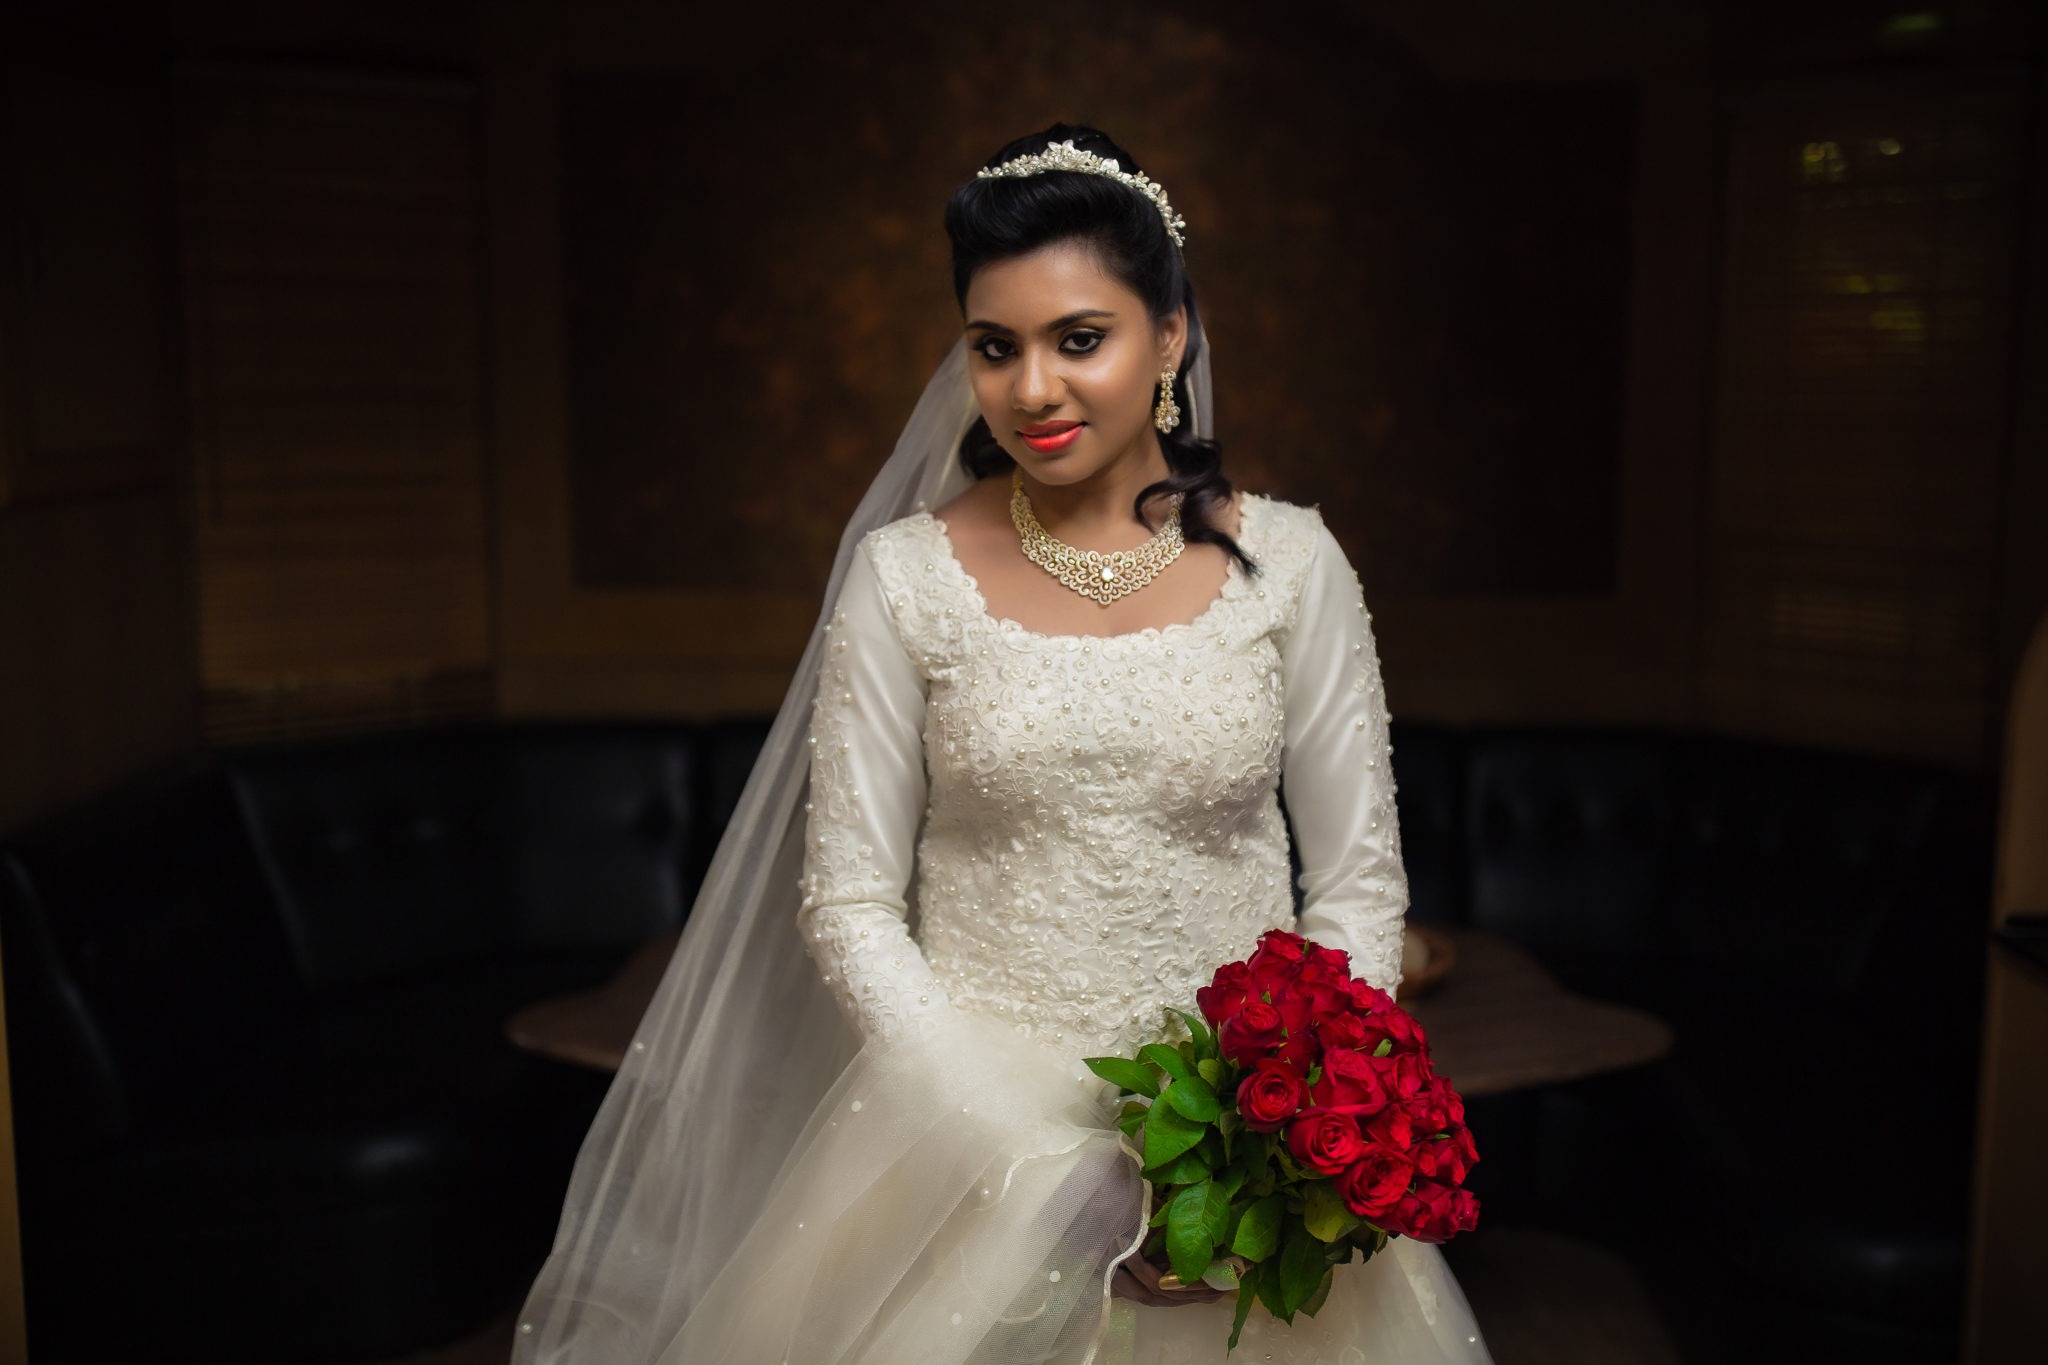 focuz studios best christian wedding photography tamil nadu 4